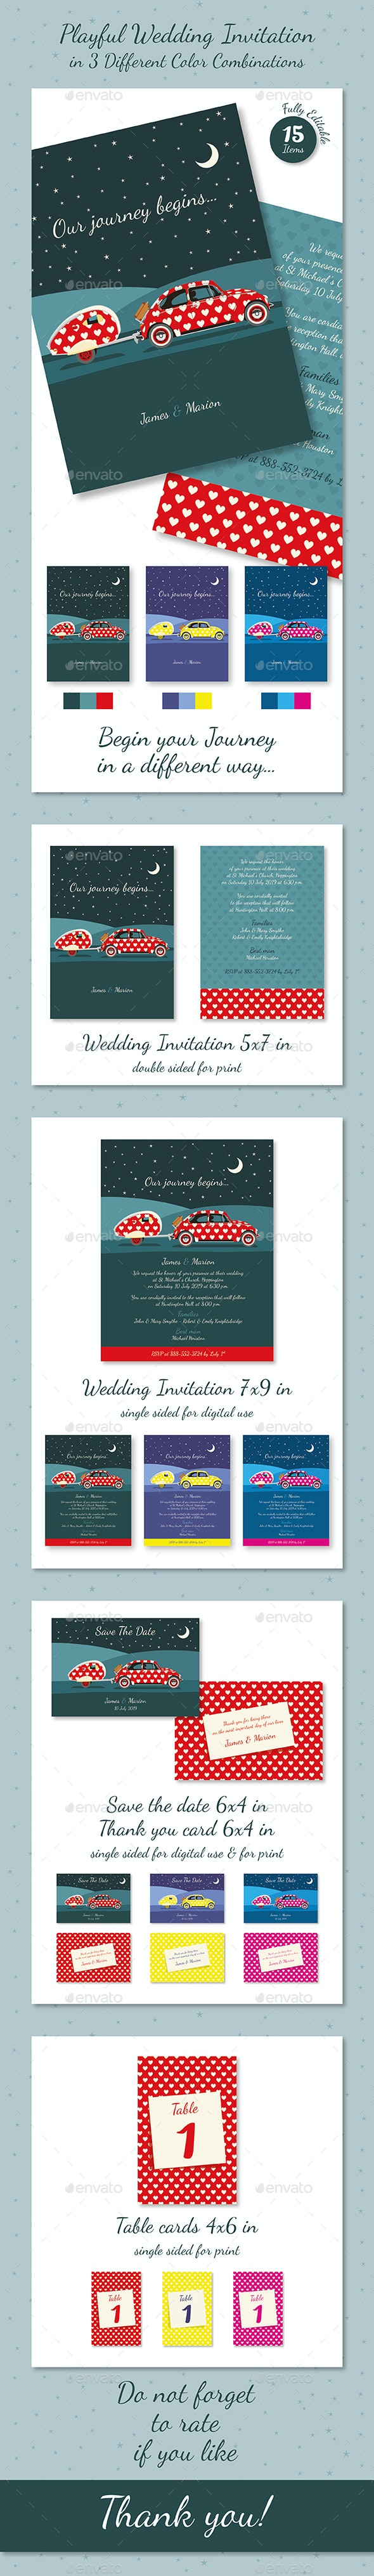 Playful Wedding Invitation in 3 Different Color Combinations - Weddings Cards & Invites